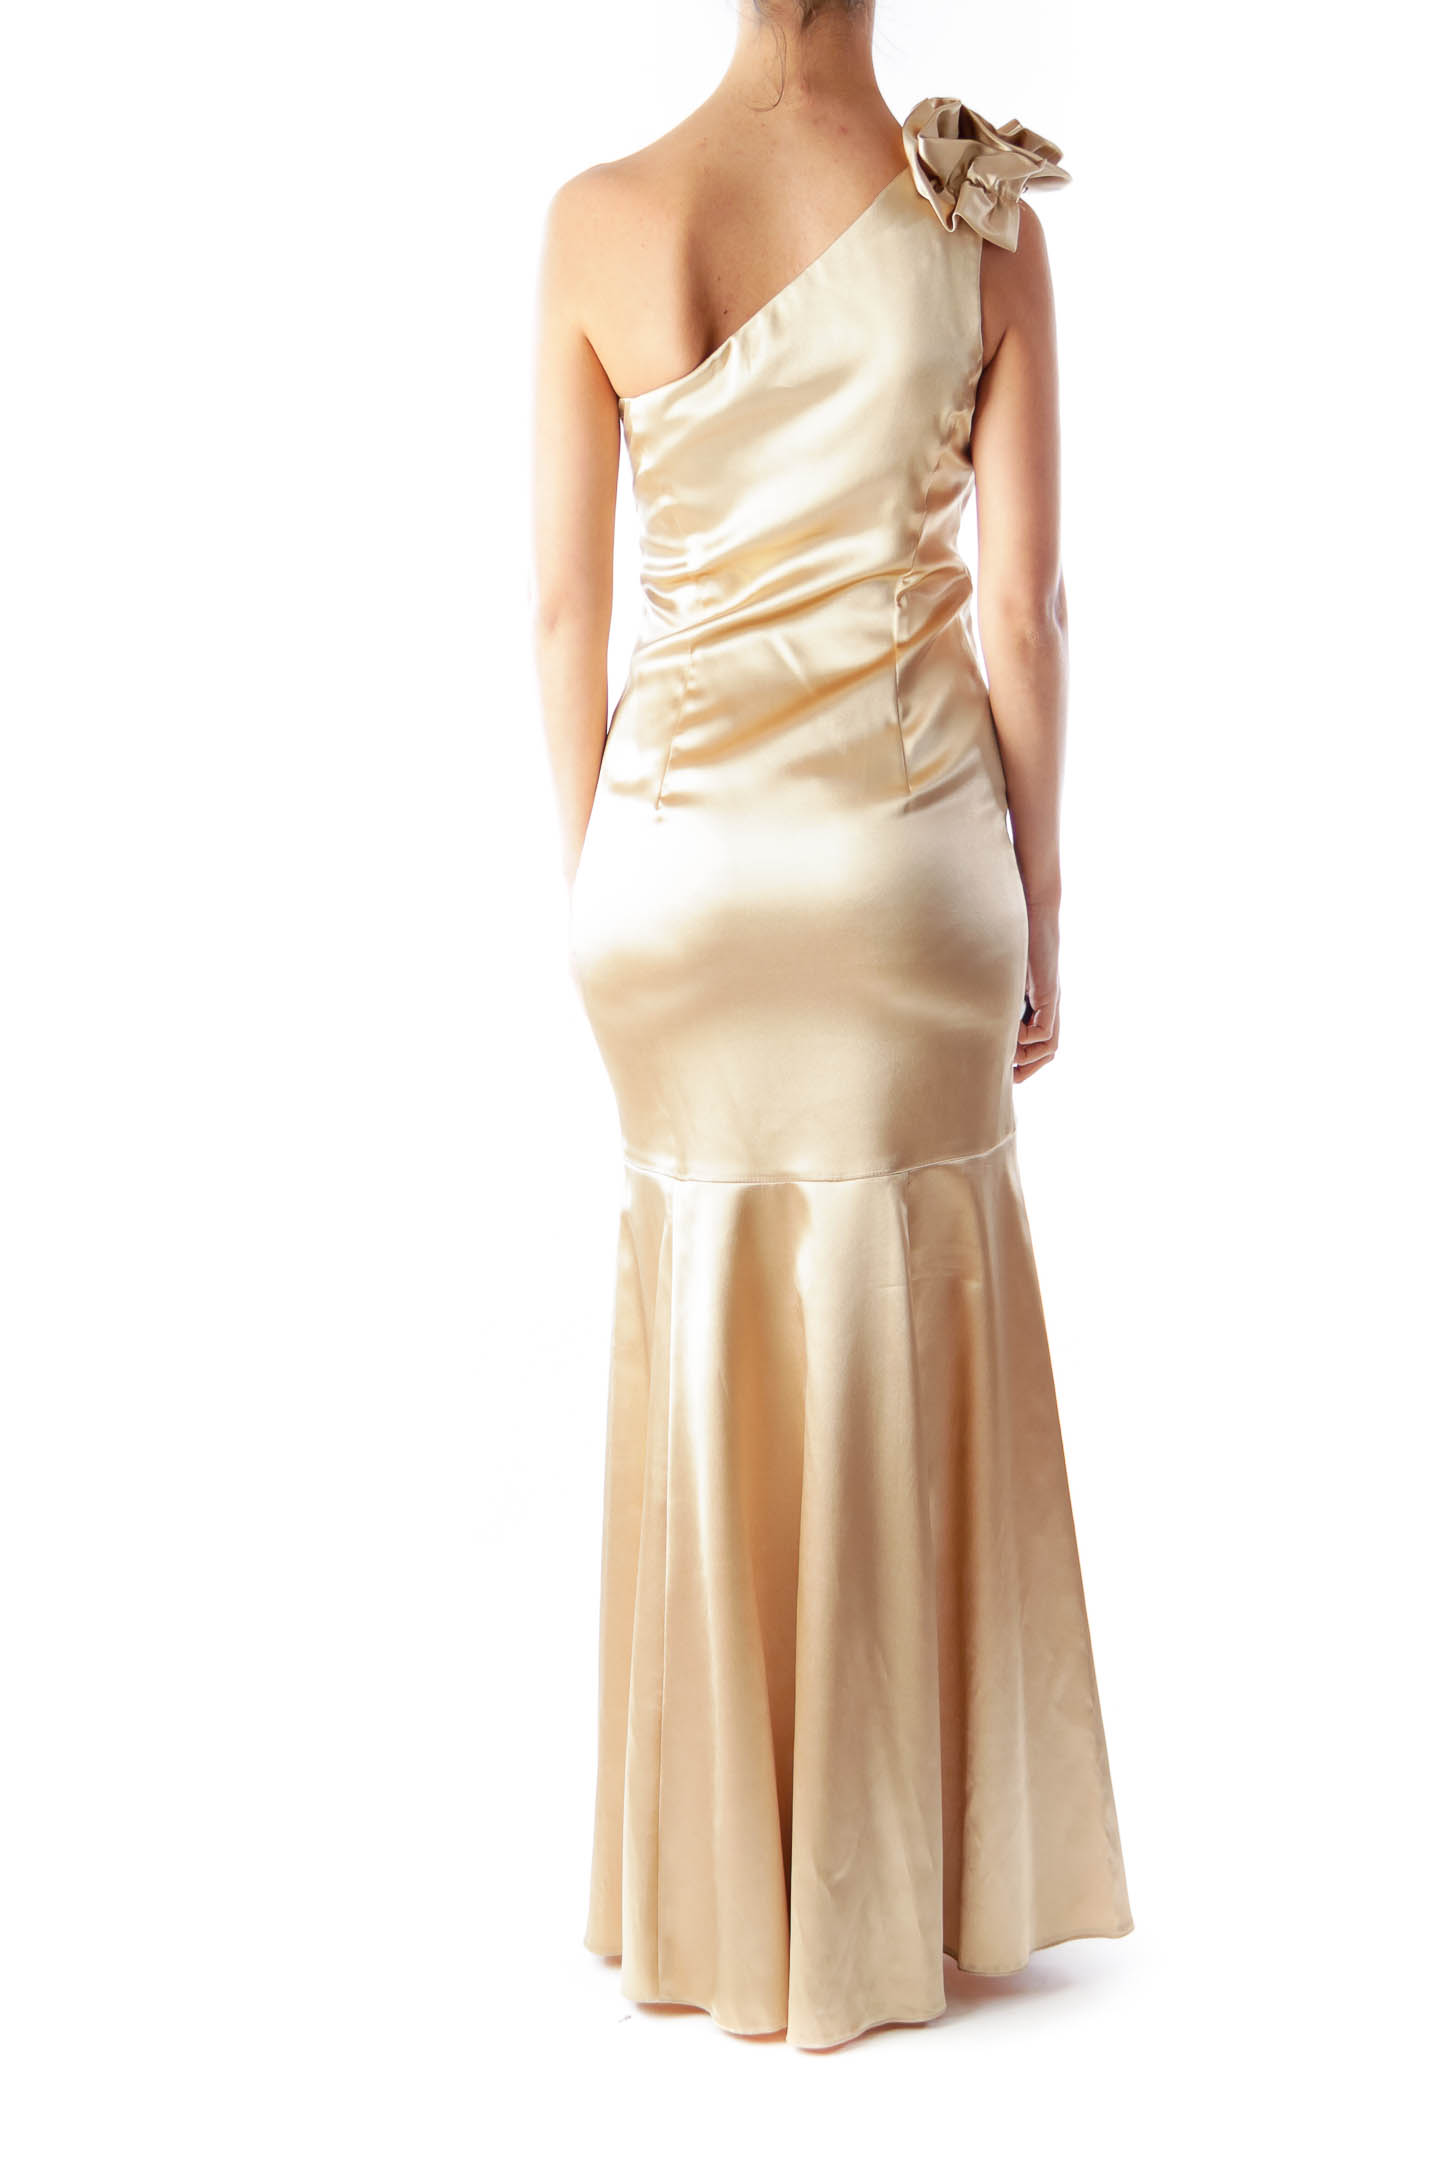 Gold One Shoulder Evening Gown [XS] - SilkRoll